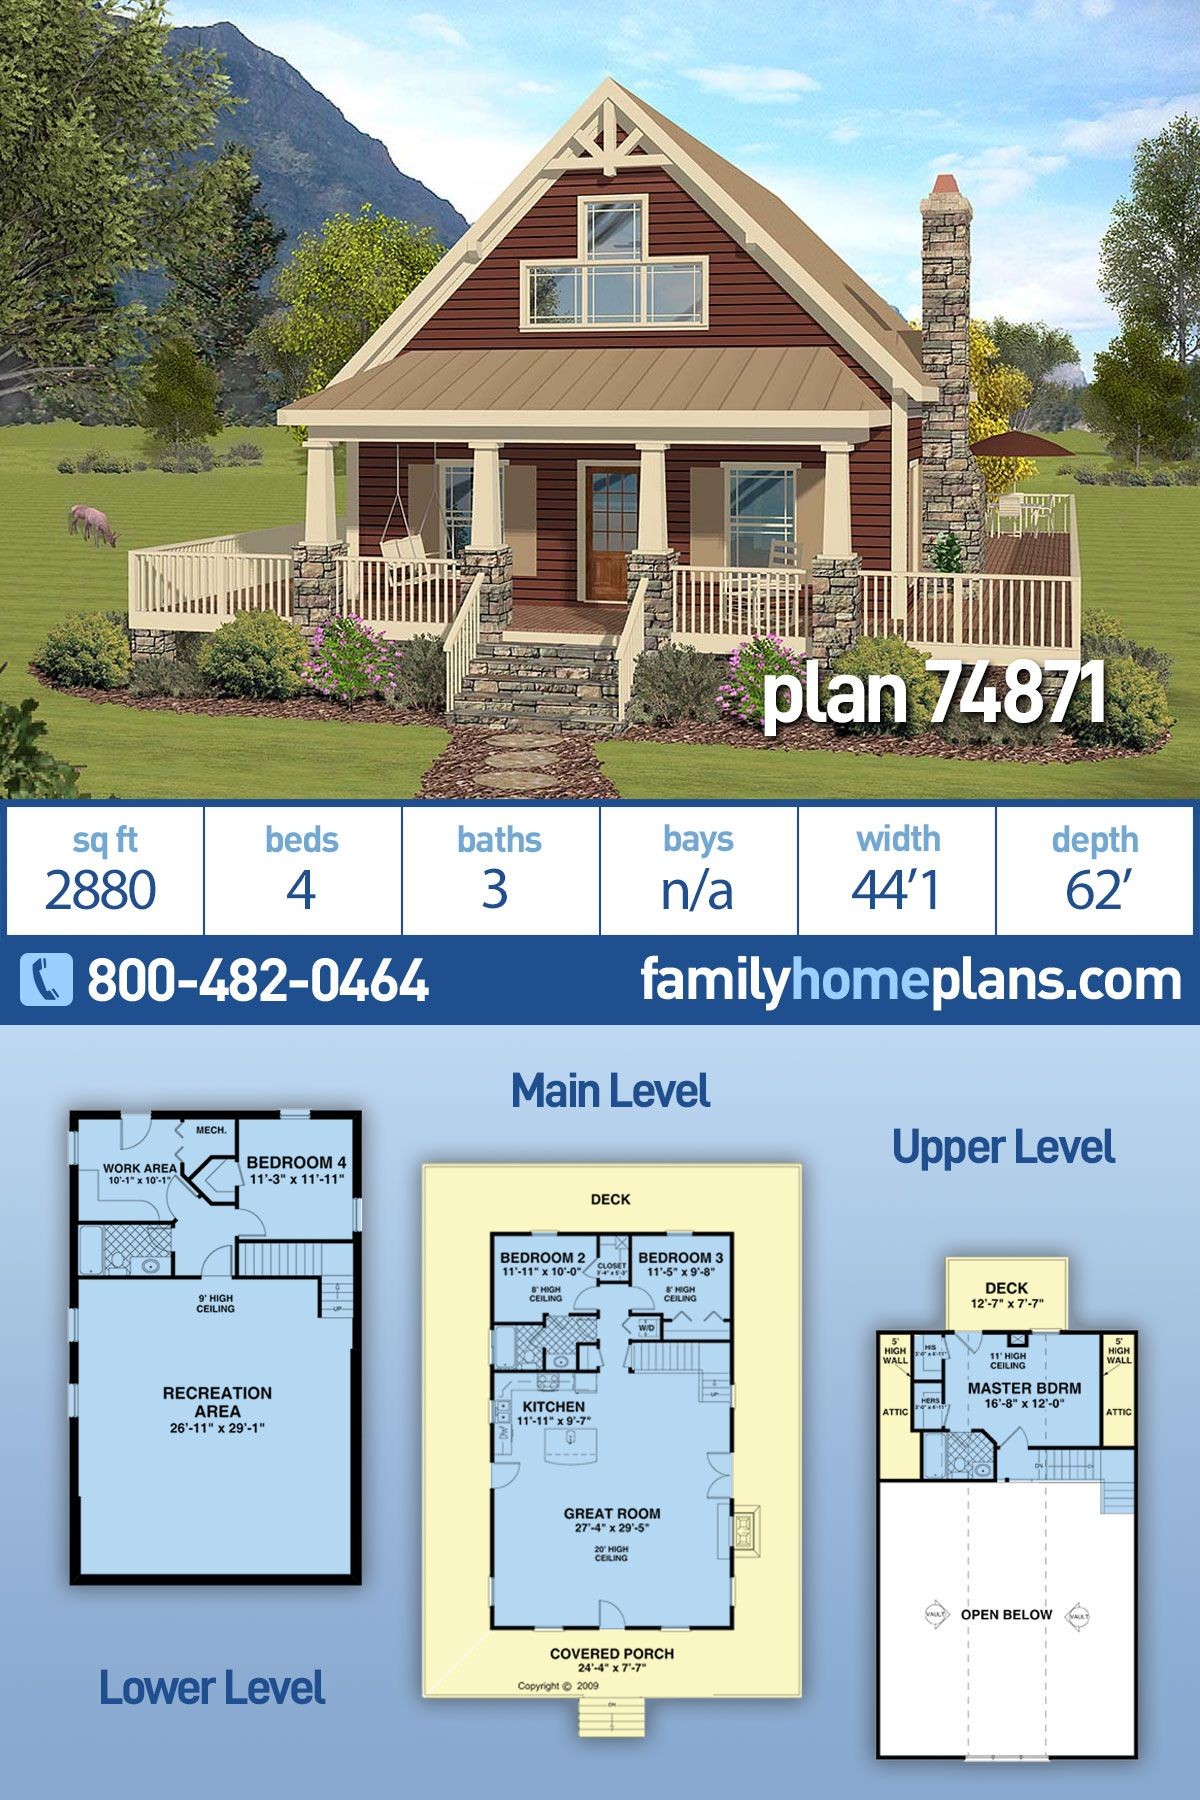 Craftsman Style House Plan 74871 With 4 Bed 3 Bath In 2020 Craftsman Style House Plans Craftsman House Plans Basement House Plans